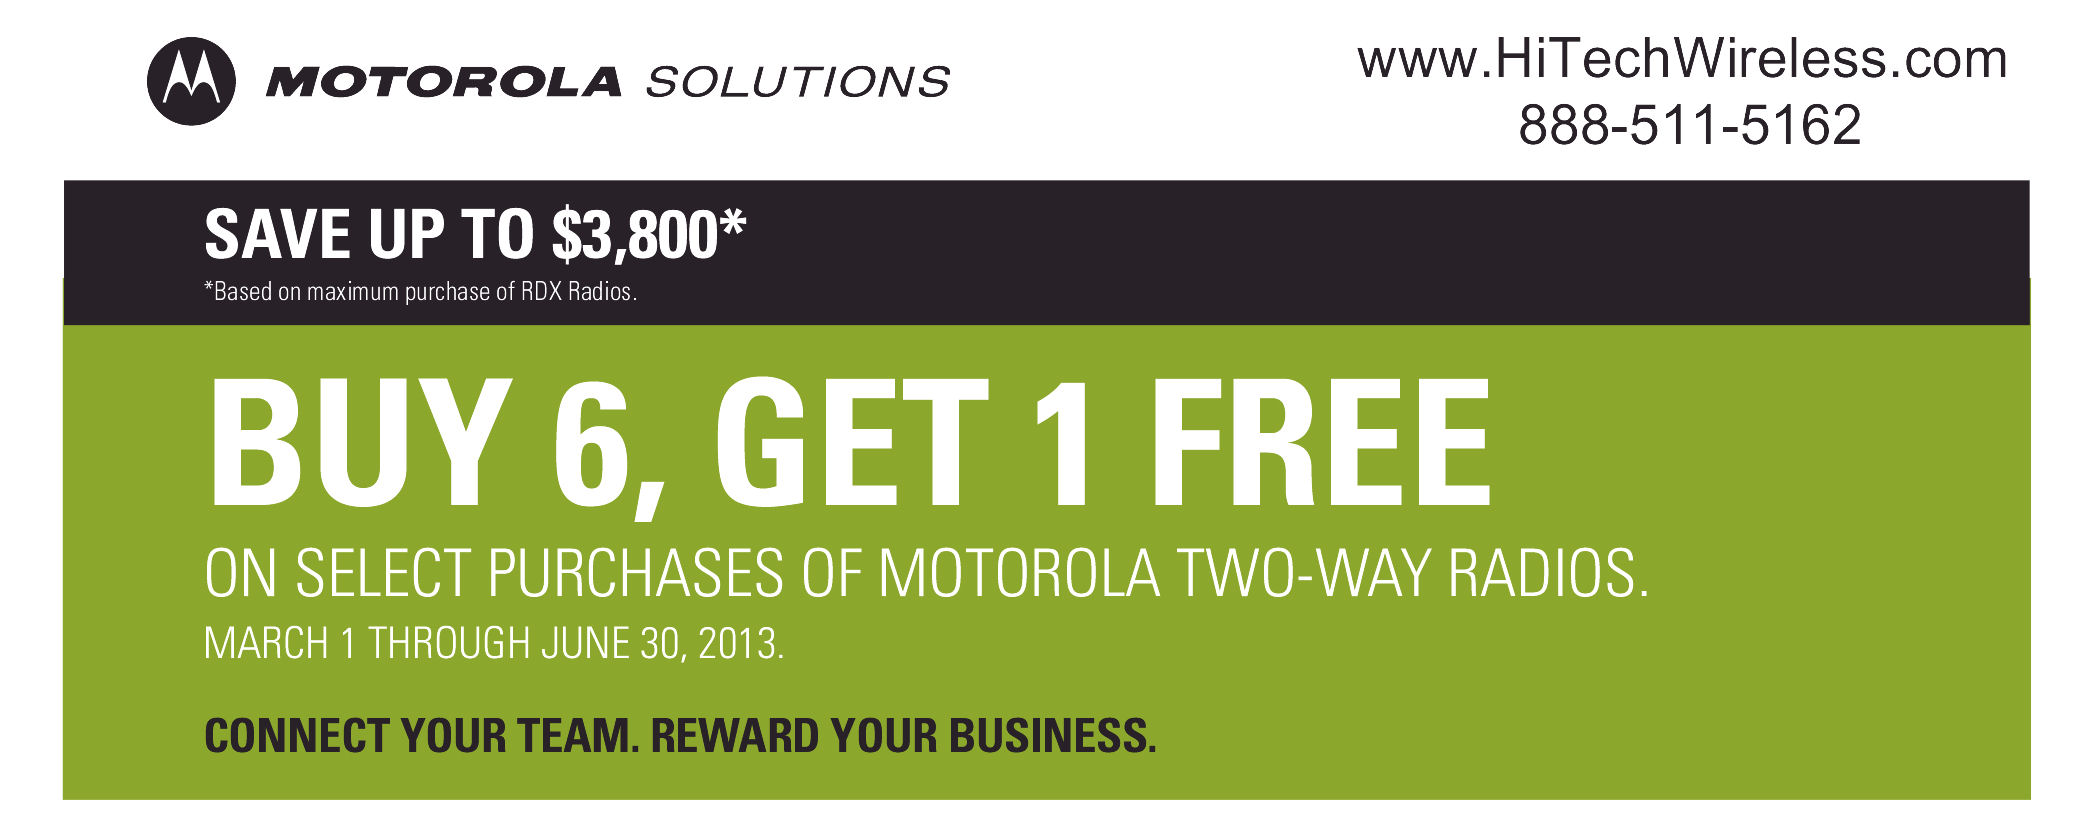 motorola-rebate-march-to-june.jpg